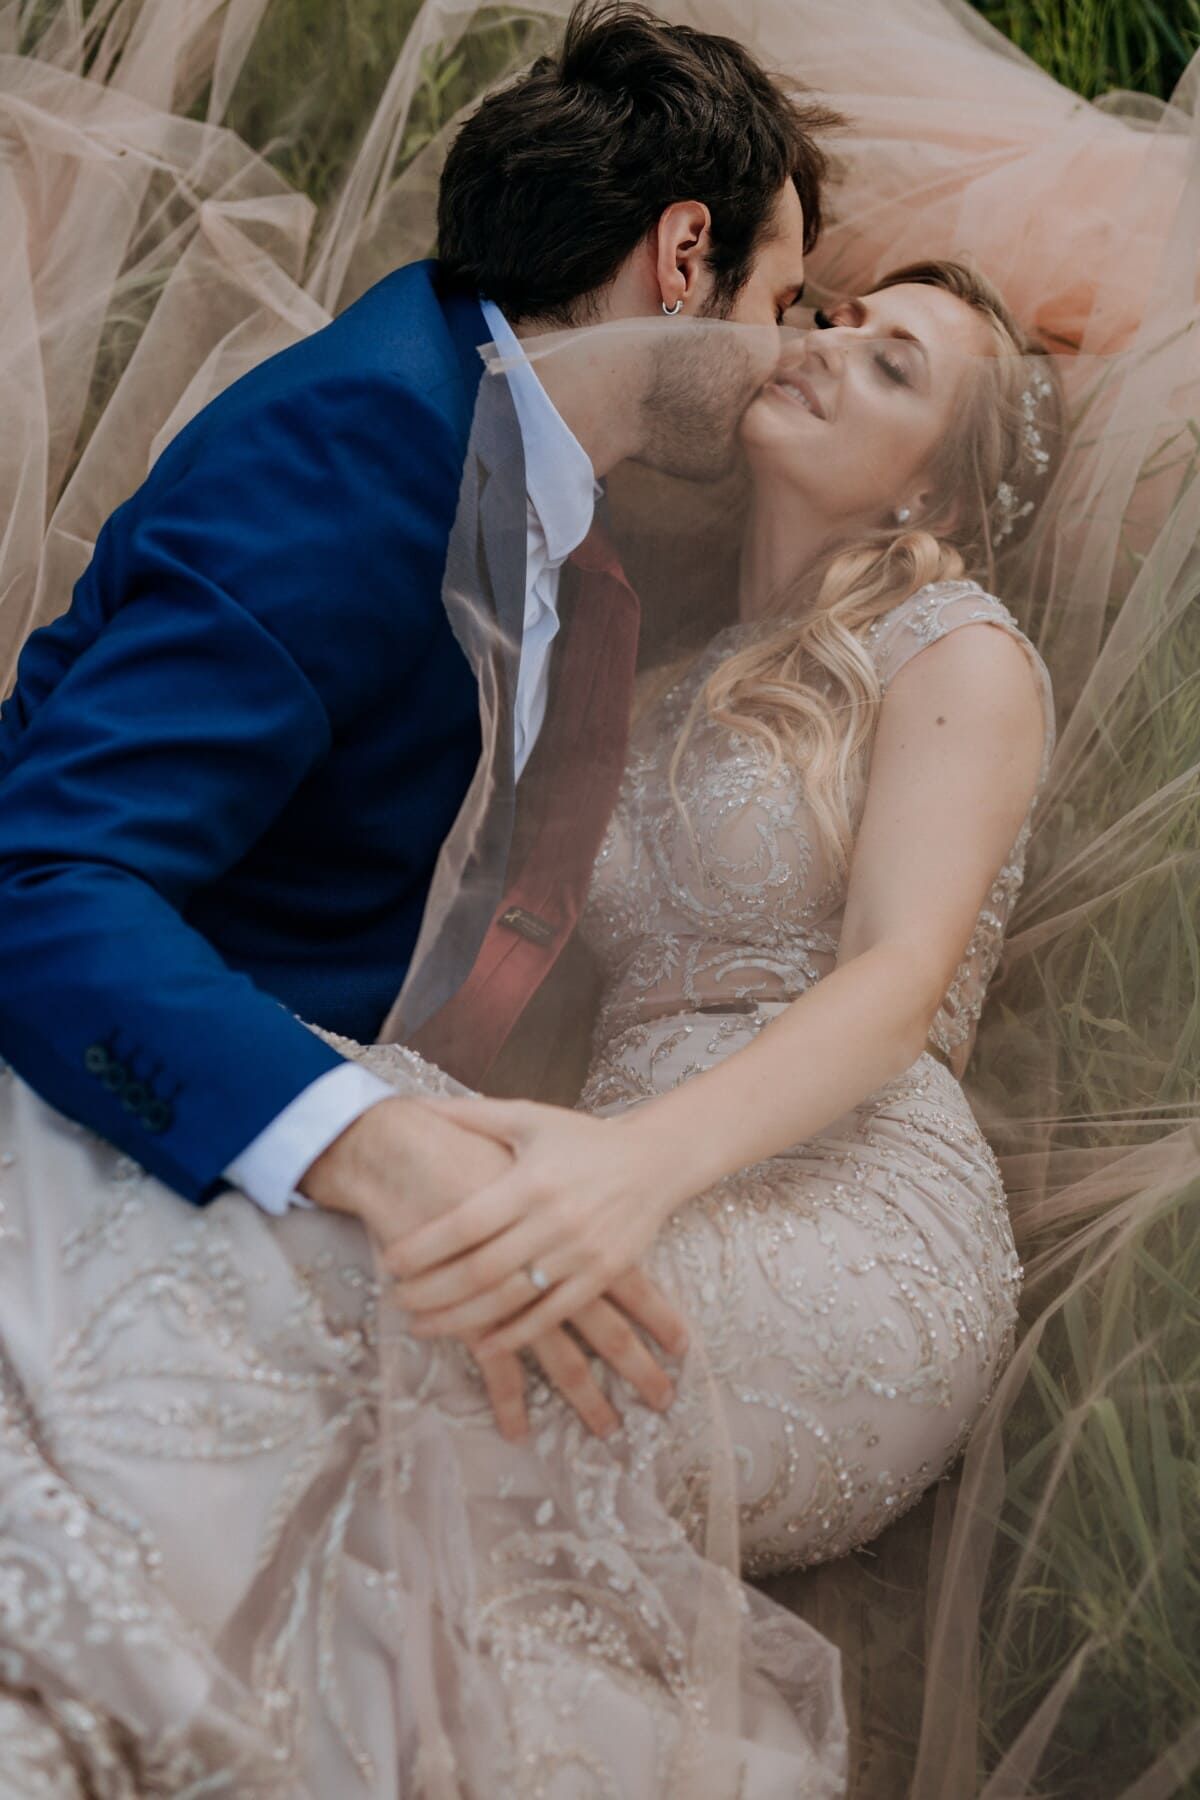 blonde, laying, love, lover, grass, love date, bride, groom, romance, engagement